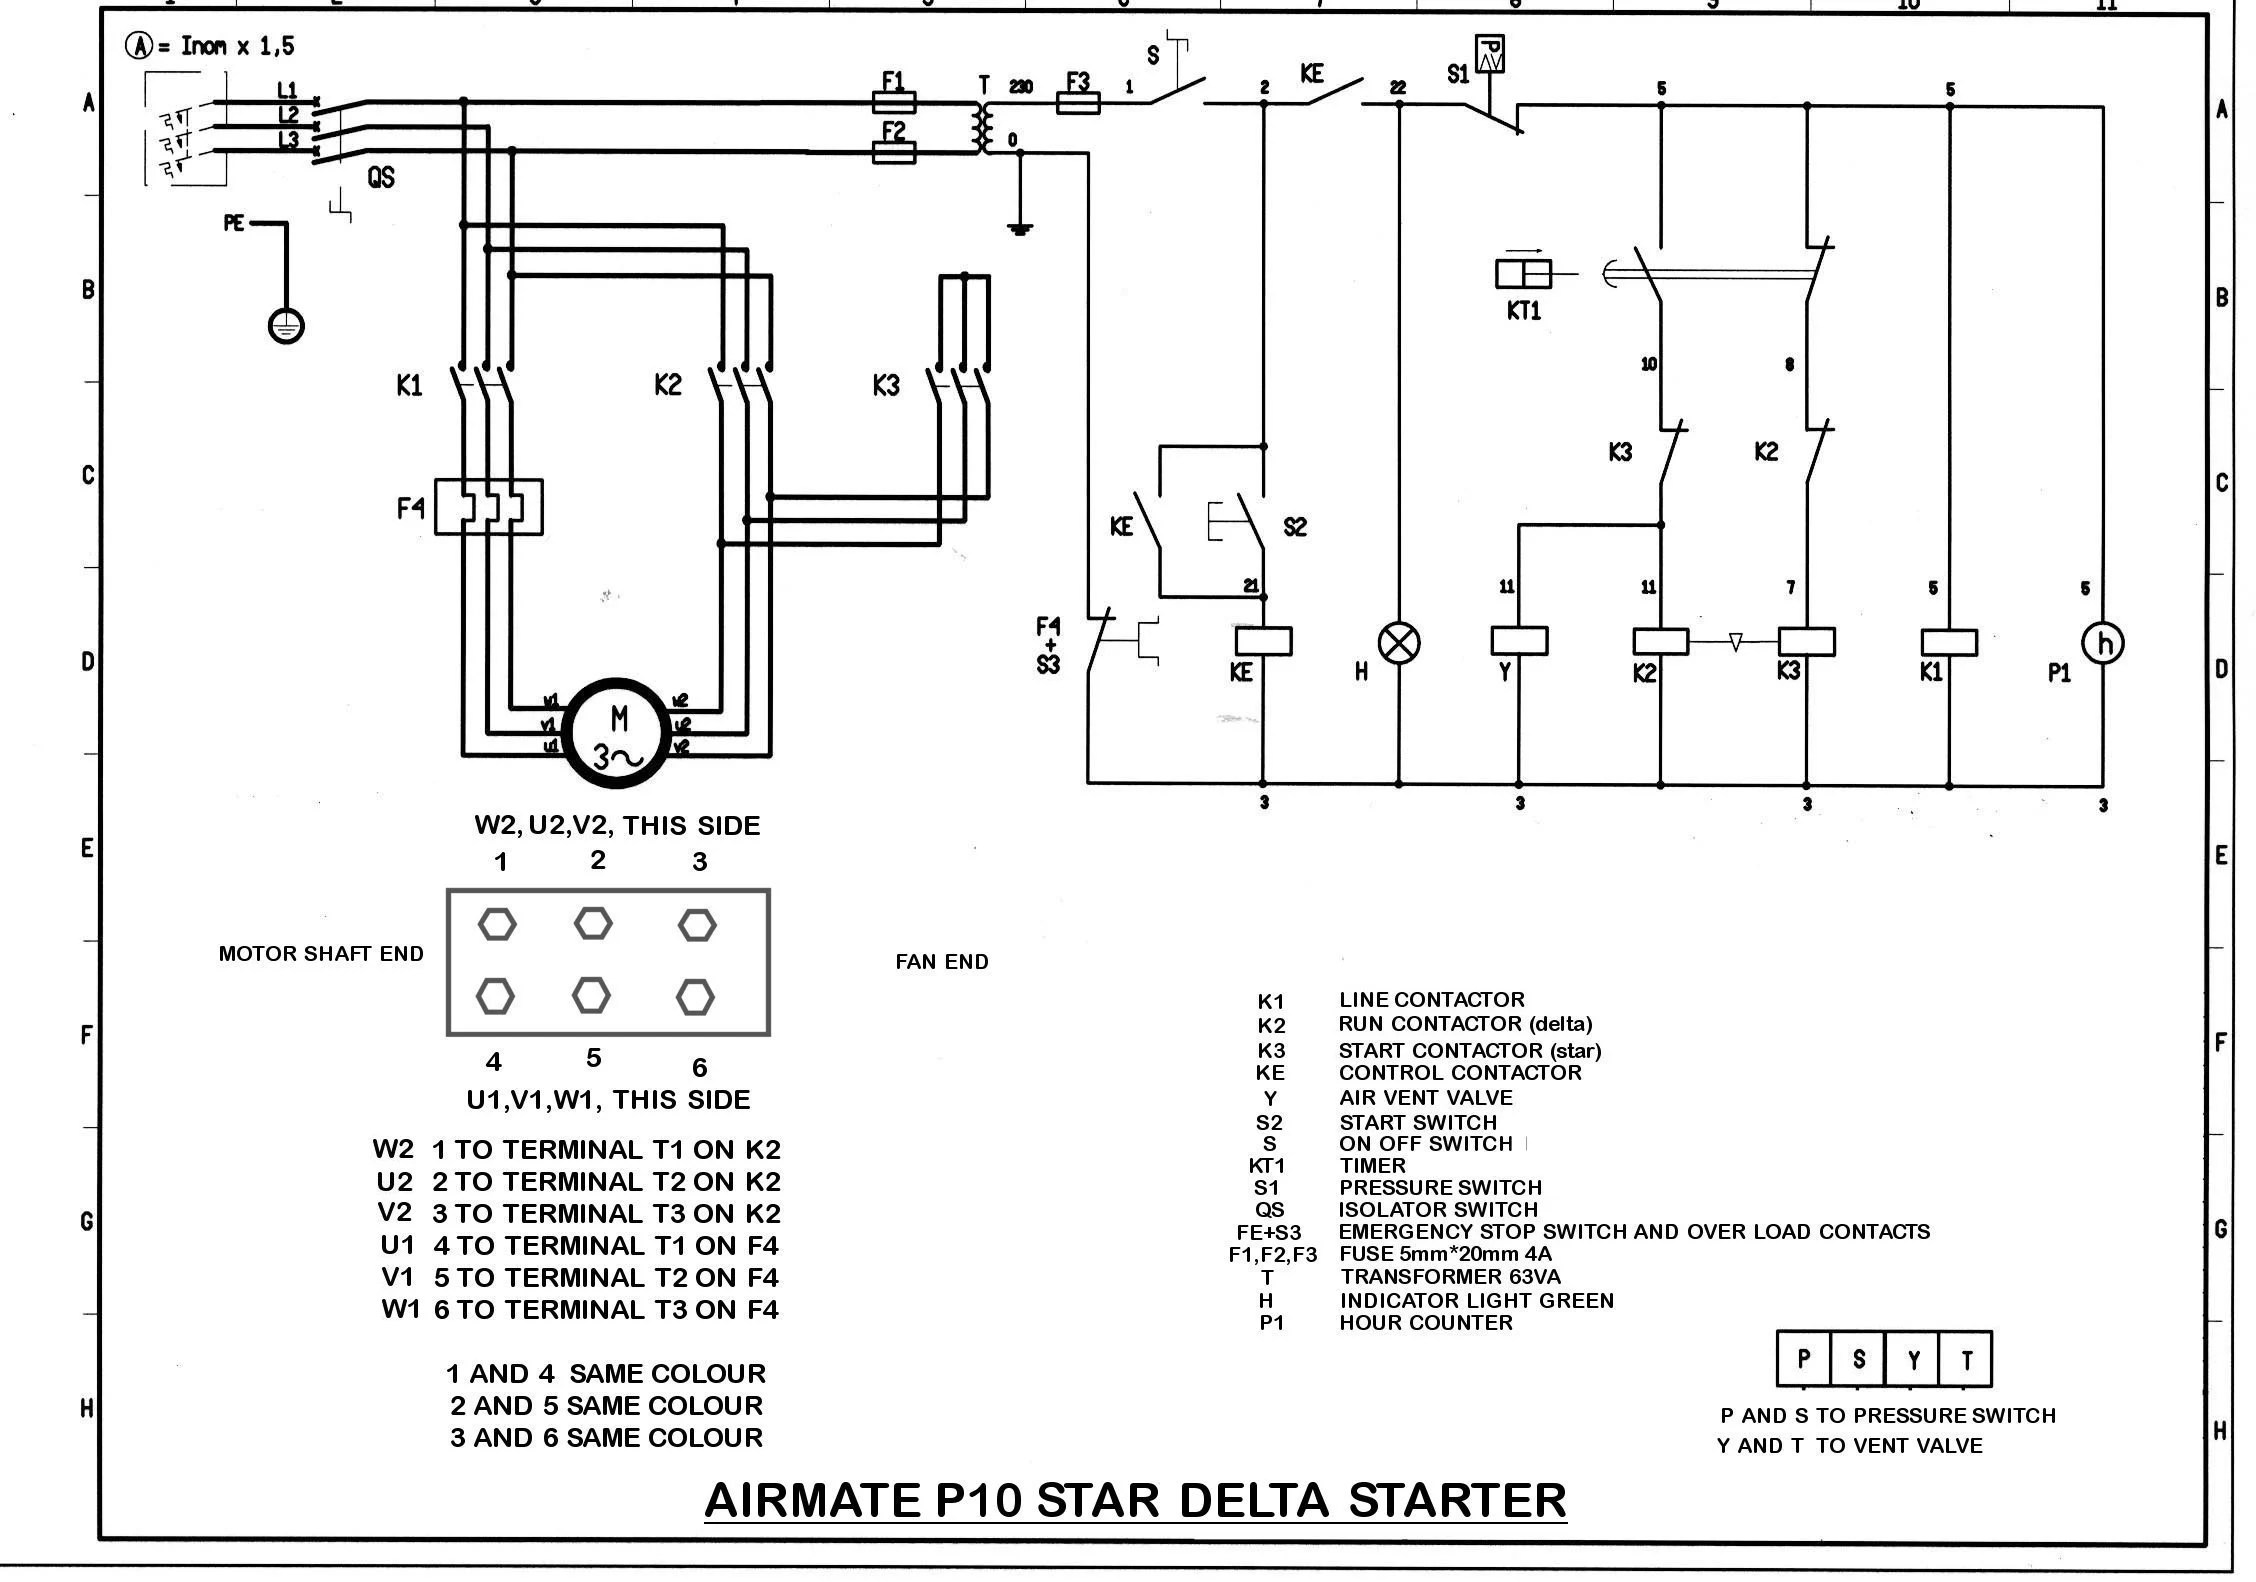 Airmate_P10_wiring compressor wiring diagram morris minor indicator wiring diagram at gsmx.co